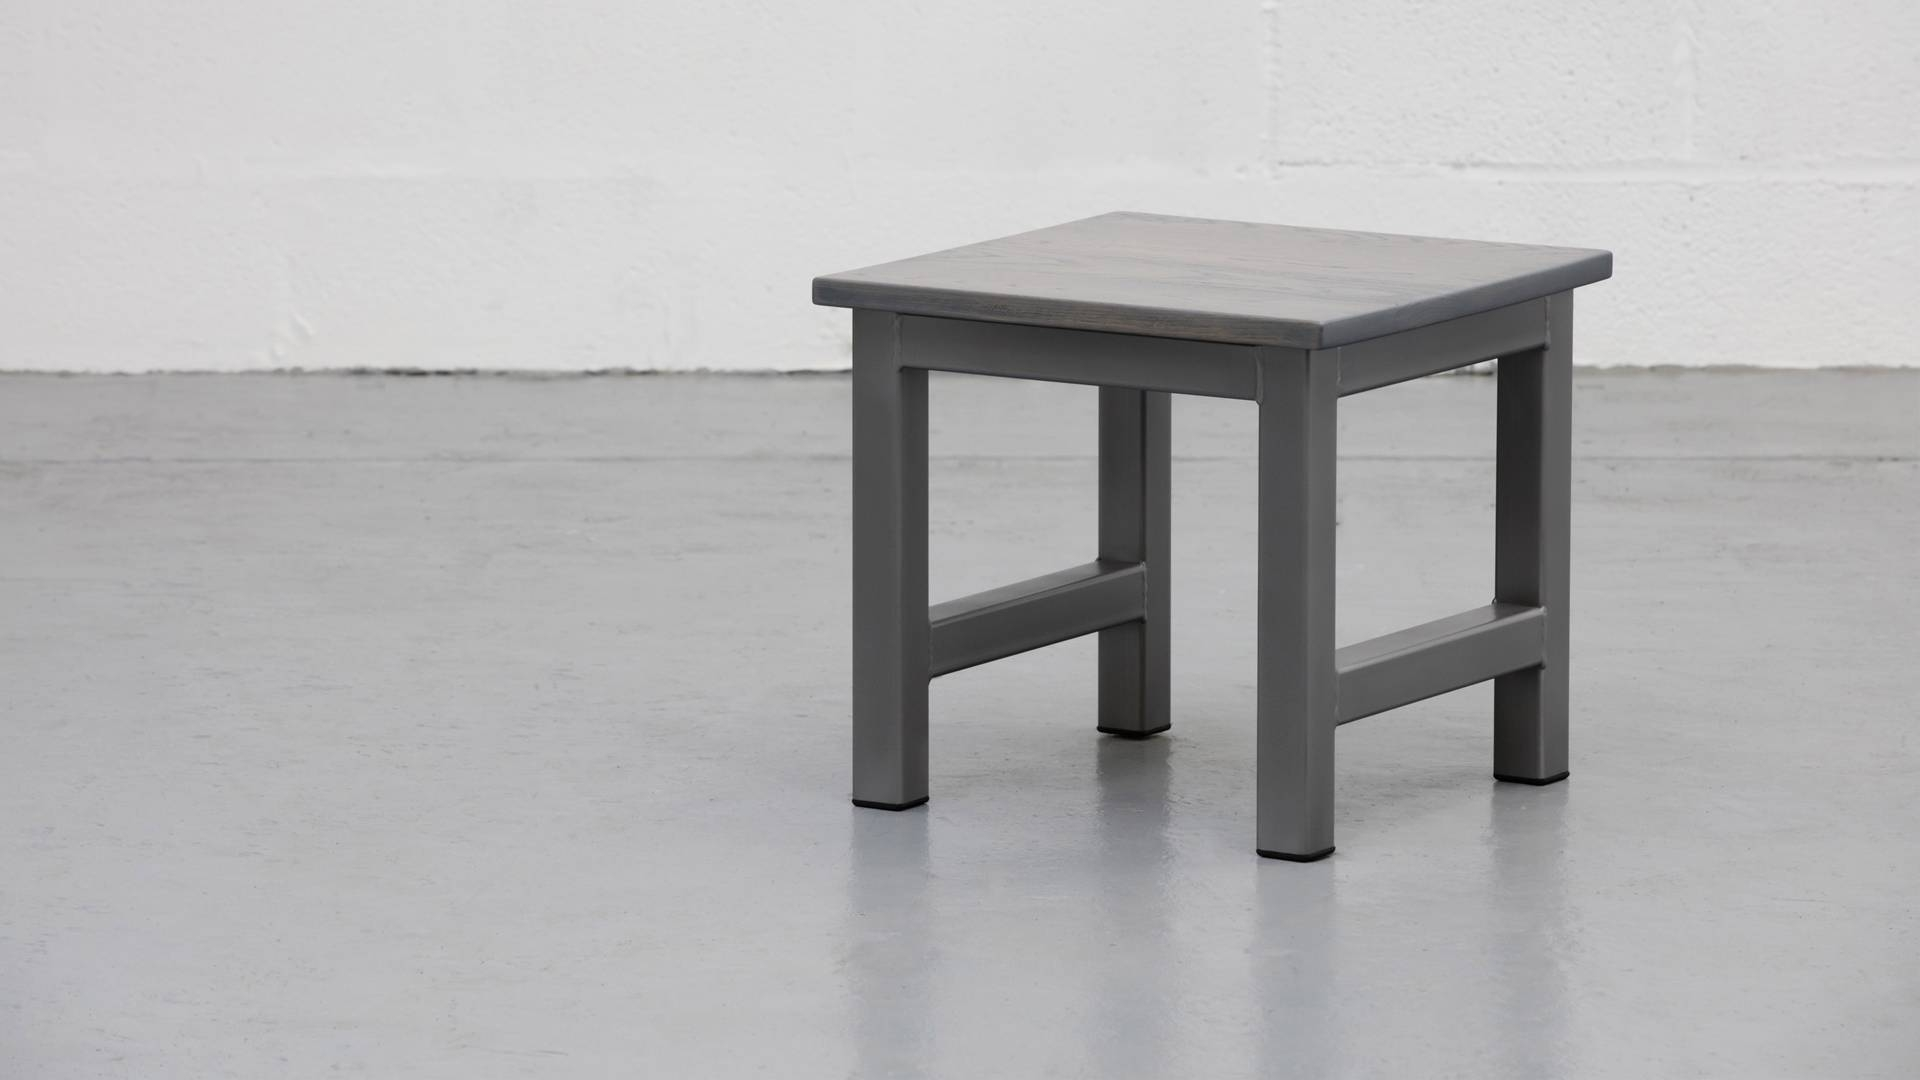 Vintage Industrial Coffee Table   Made In Uk   Steel Vintage With Regard To Low Industrial Coffee Tables (View 20 of 30)